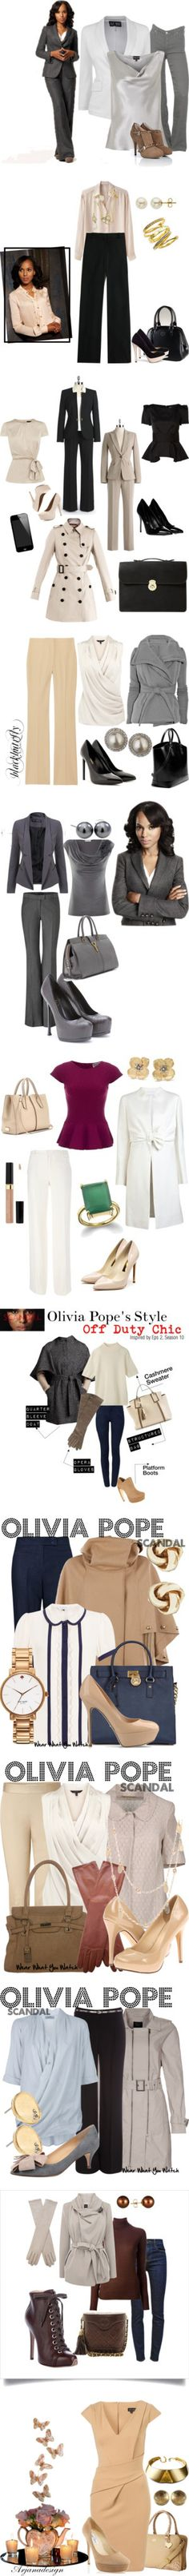 """""""olivia pope"""" by eligdr ❤ liked on Polyvore..... Mom asked me what I want for Christmas, I think it's going to be a list of Olivia Pope inspired outfits. So perfect ❤️"""